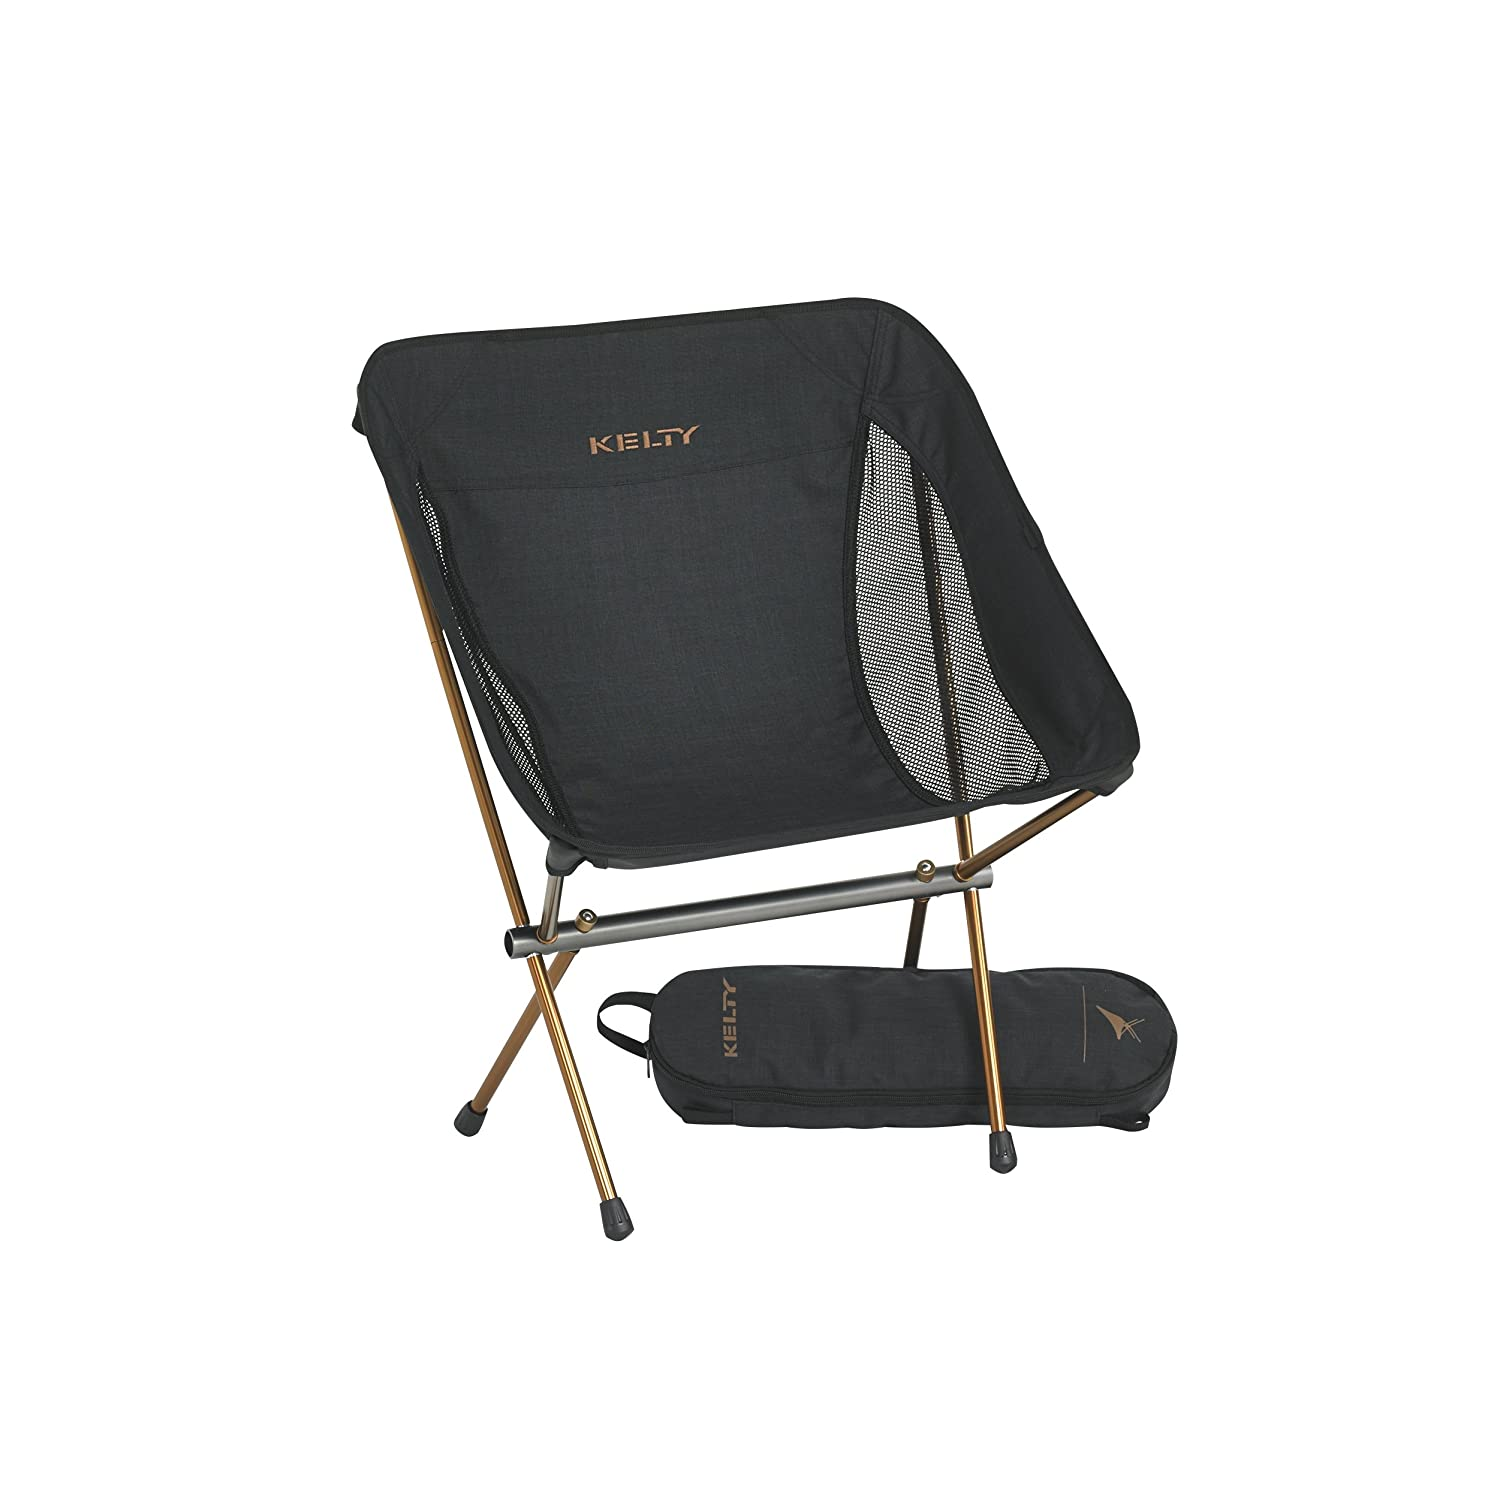 Kelty Linger Outdoor Chair Light Low Back 20 x 18.5 x 26 61510416